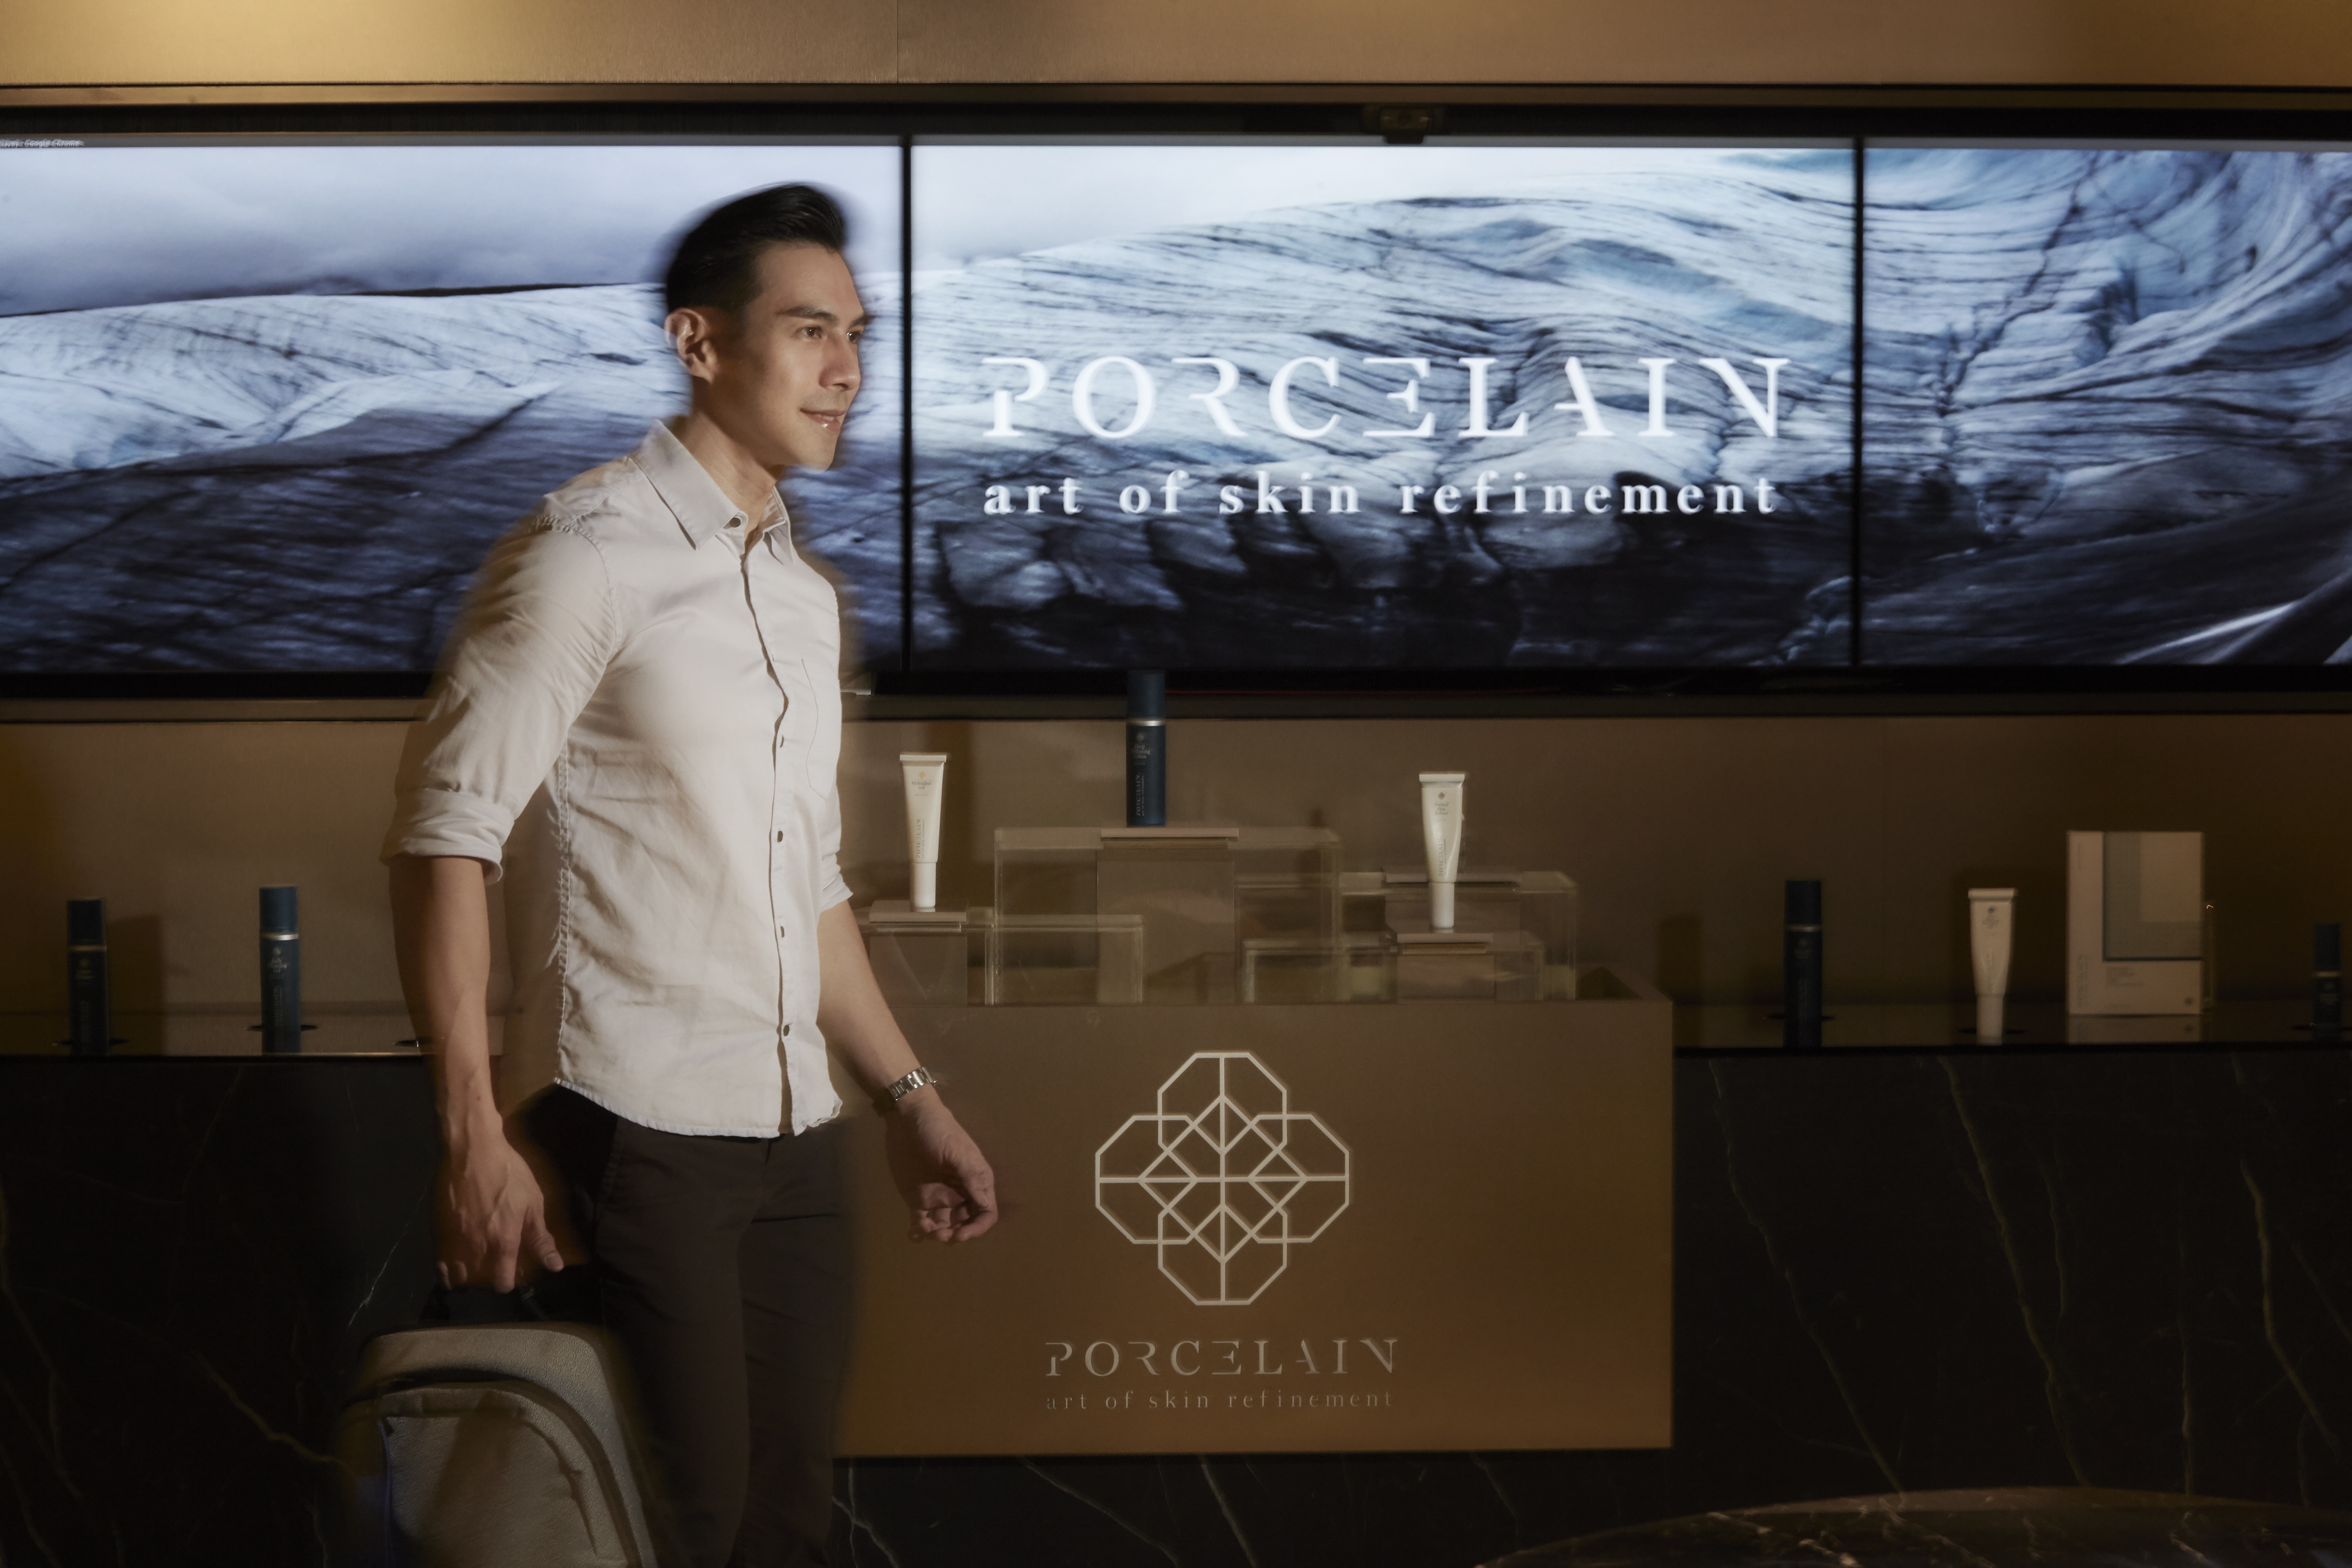 Paulo Atienza Tries Out Porcelain's CO2 Skin Renewal Treatment